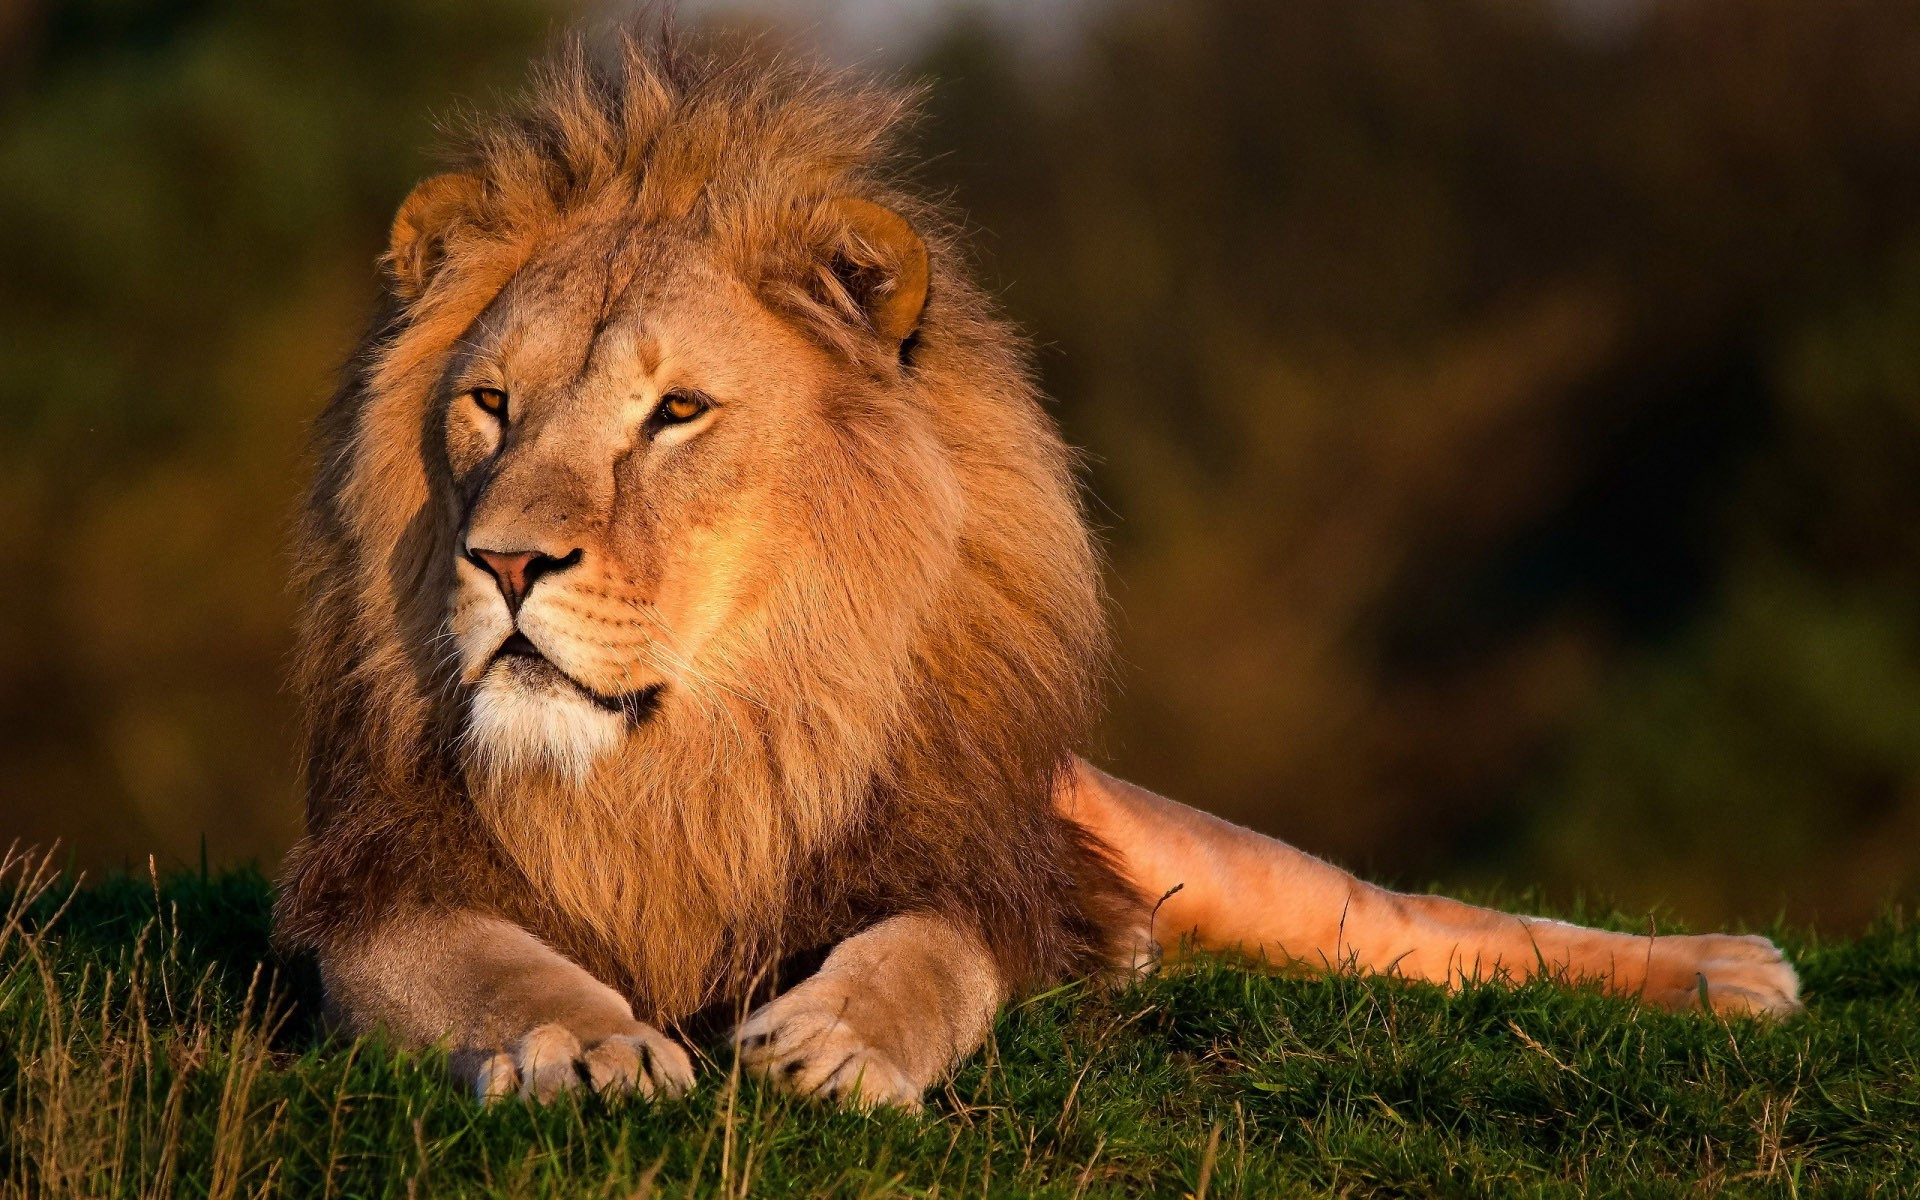 Lion Hd Wallpapers Lion Hd Pictures Free Download Hd 1920x1200